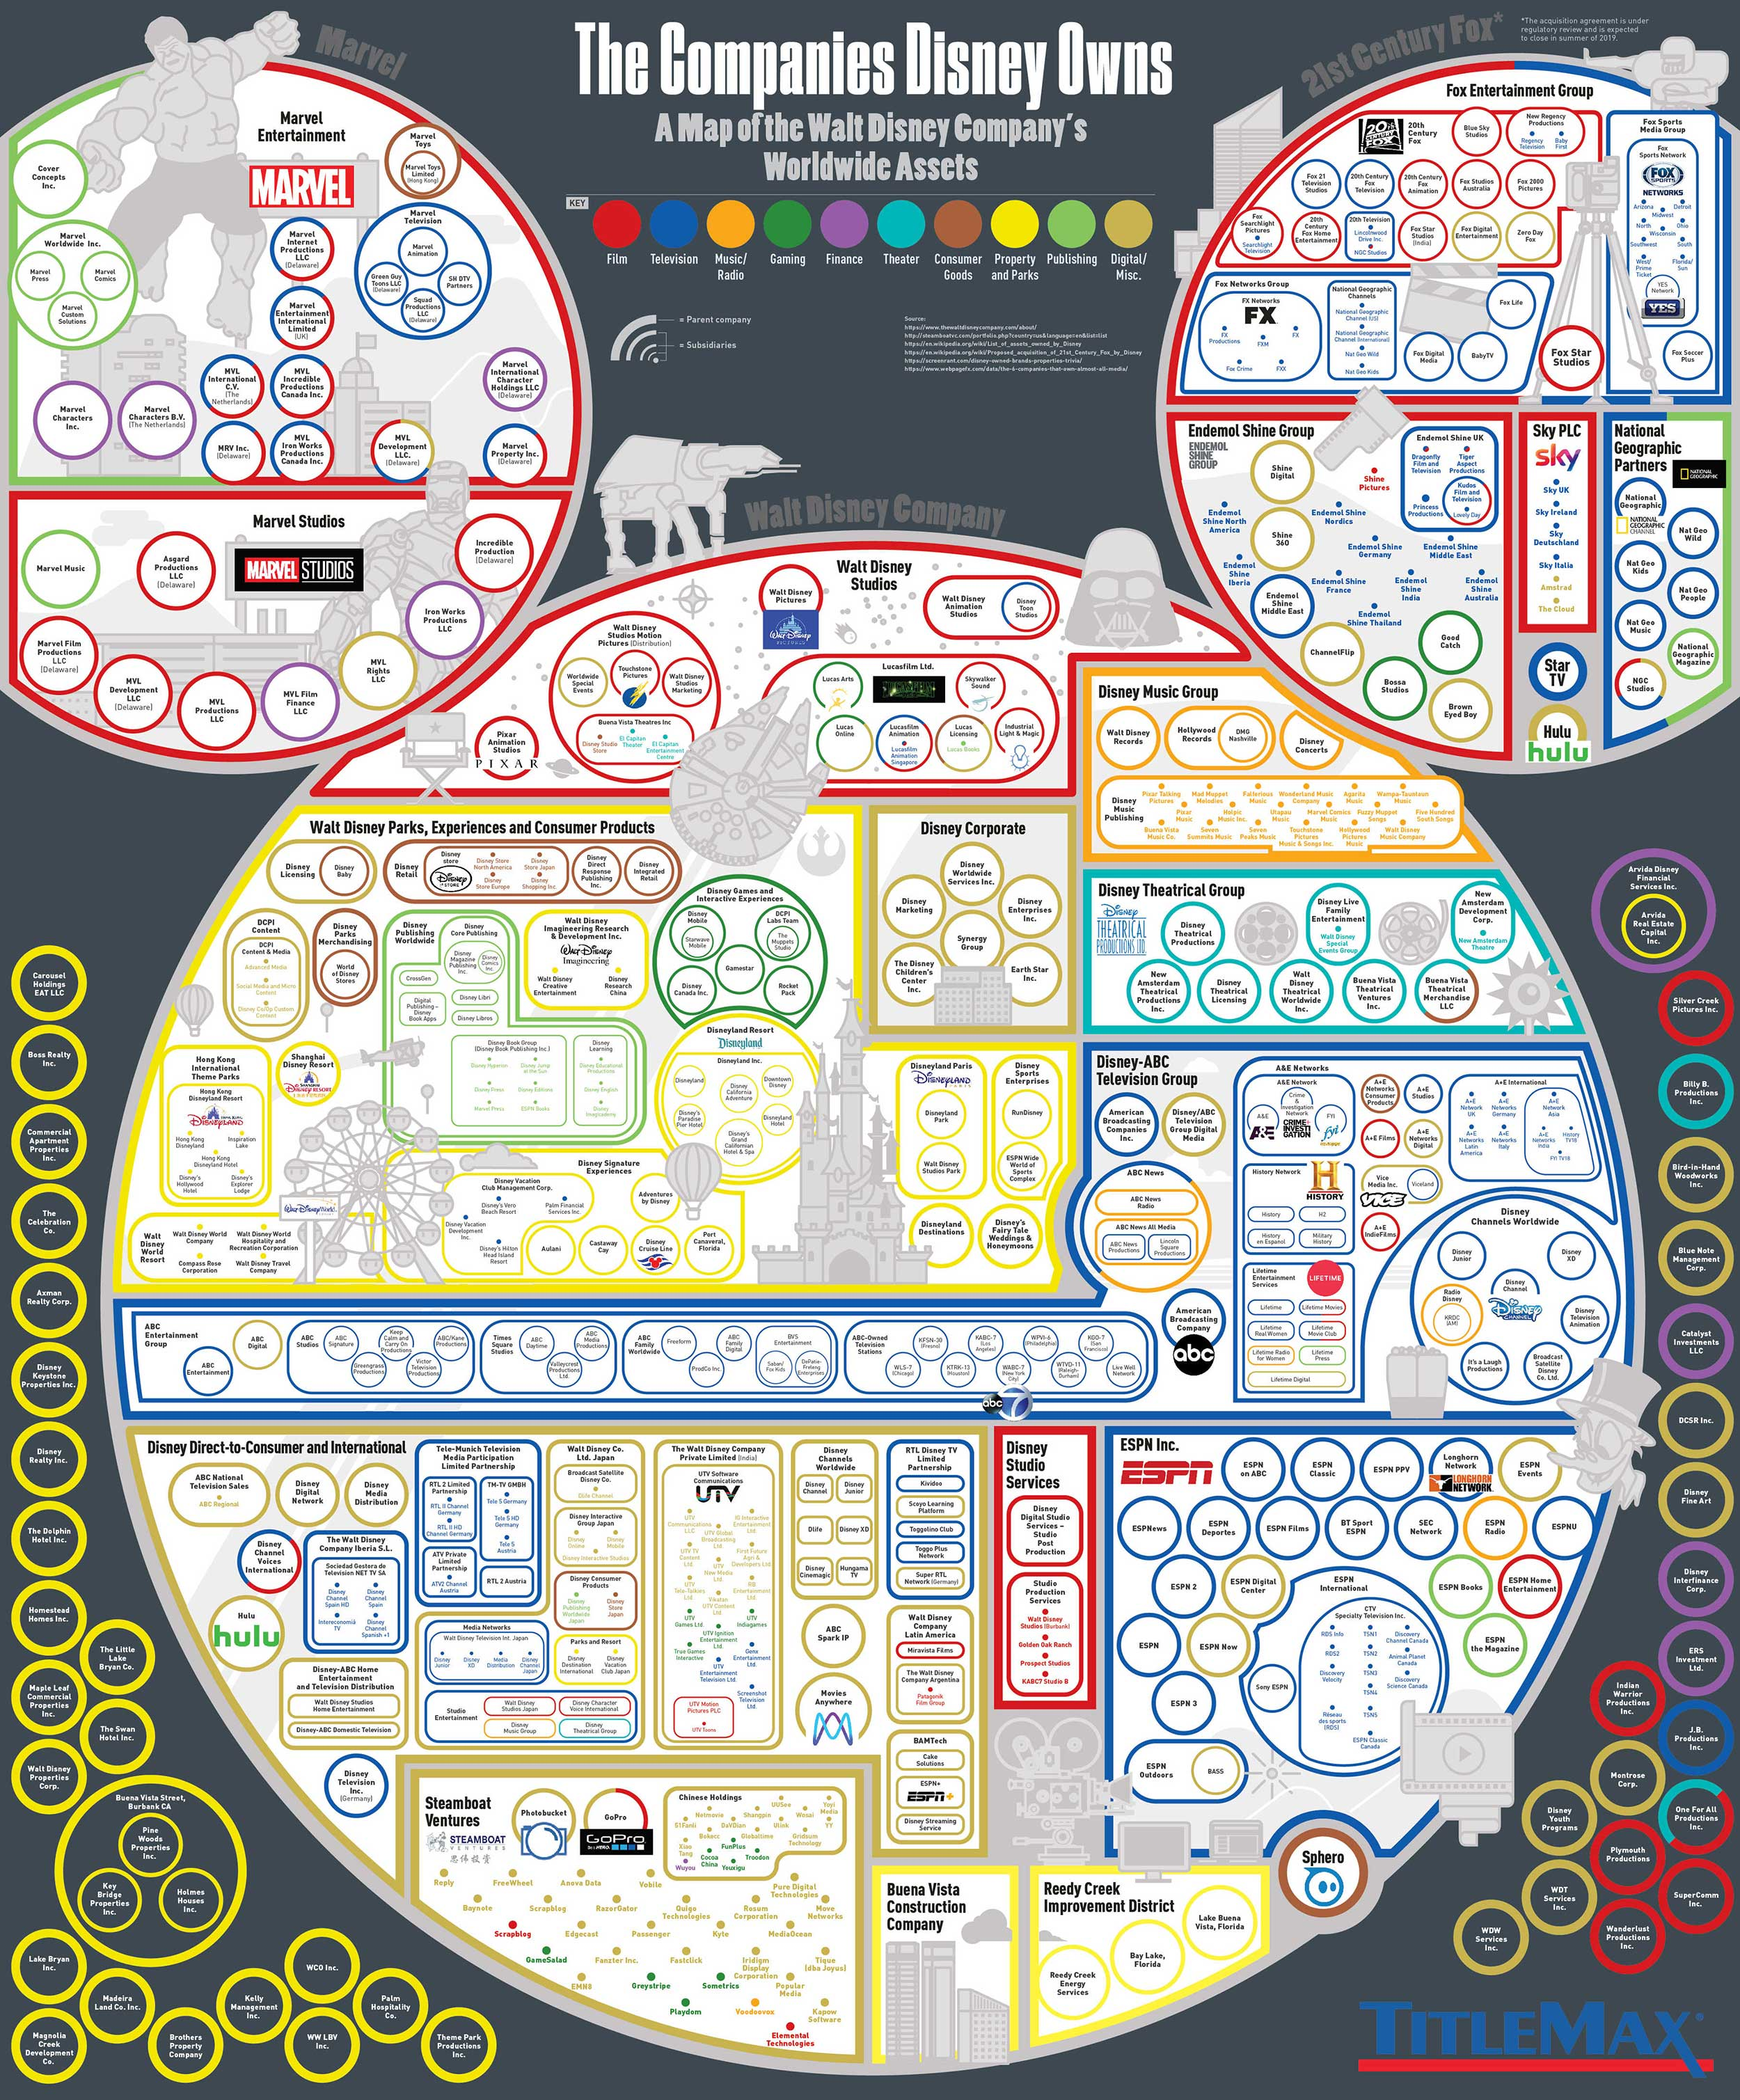 The Companies Disney Owns infographic